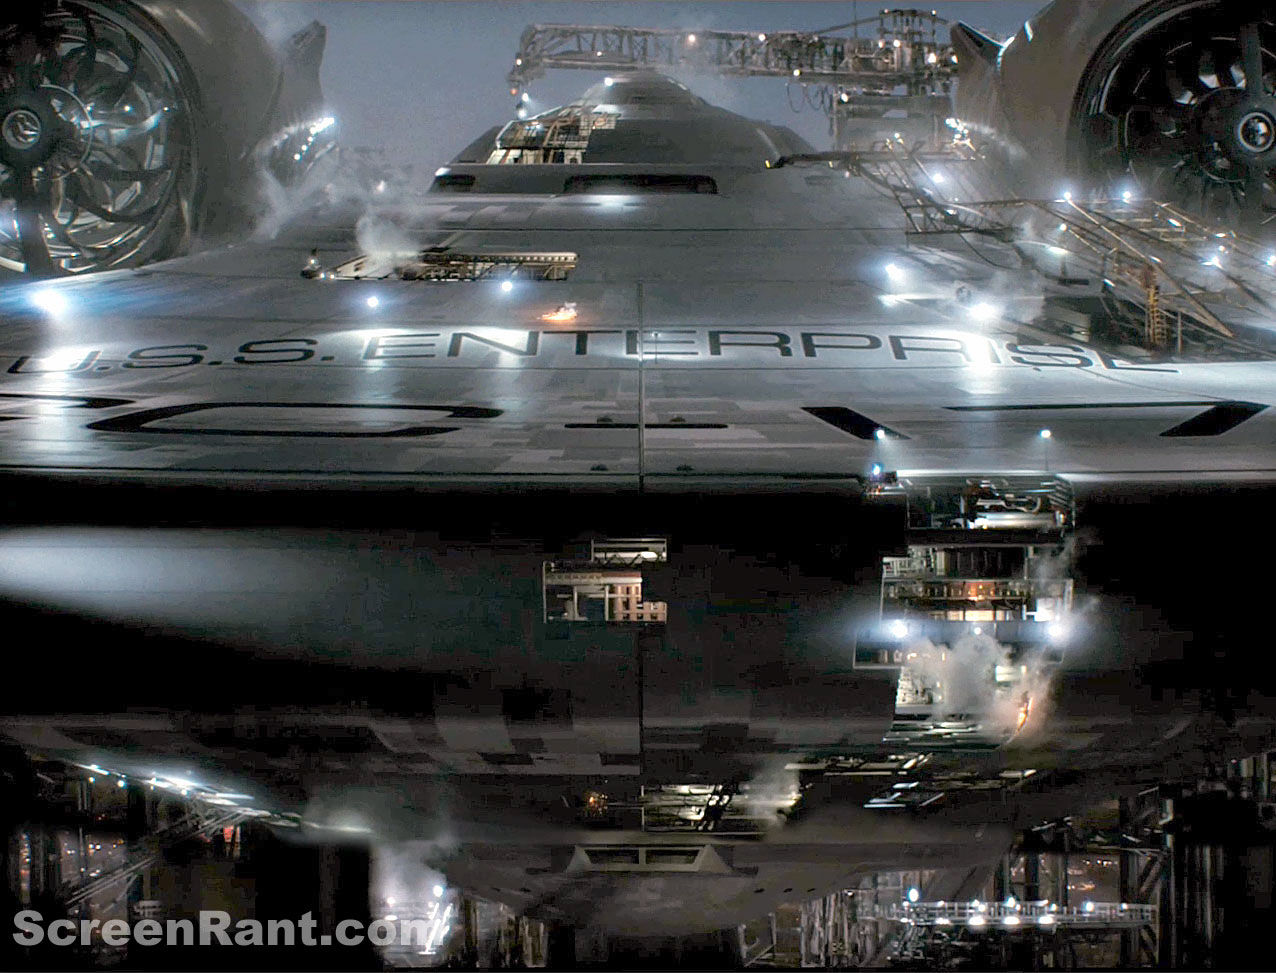 enterprise detail1 Finally, Some New Star Trek News